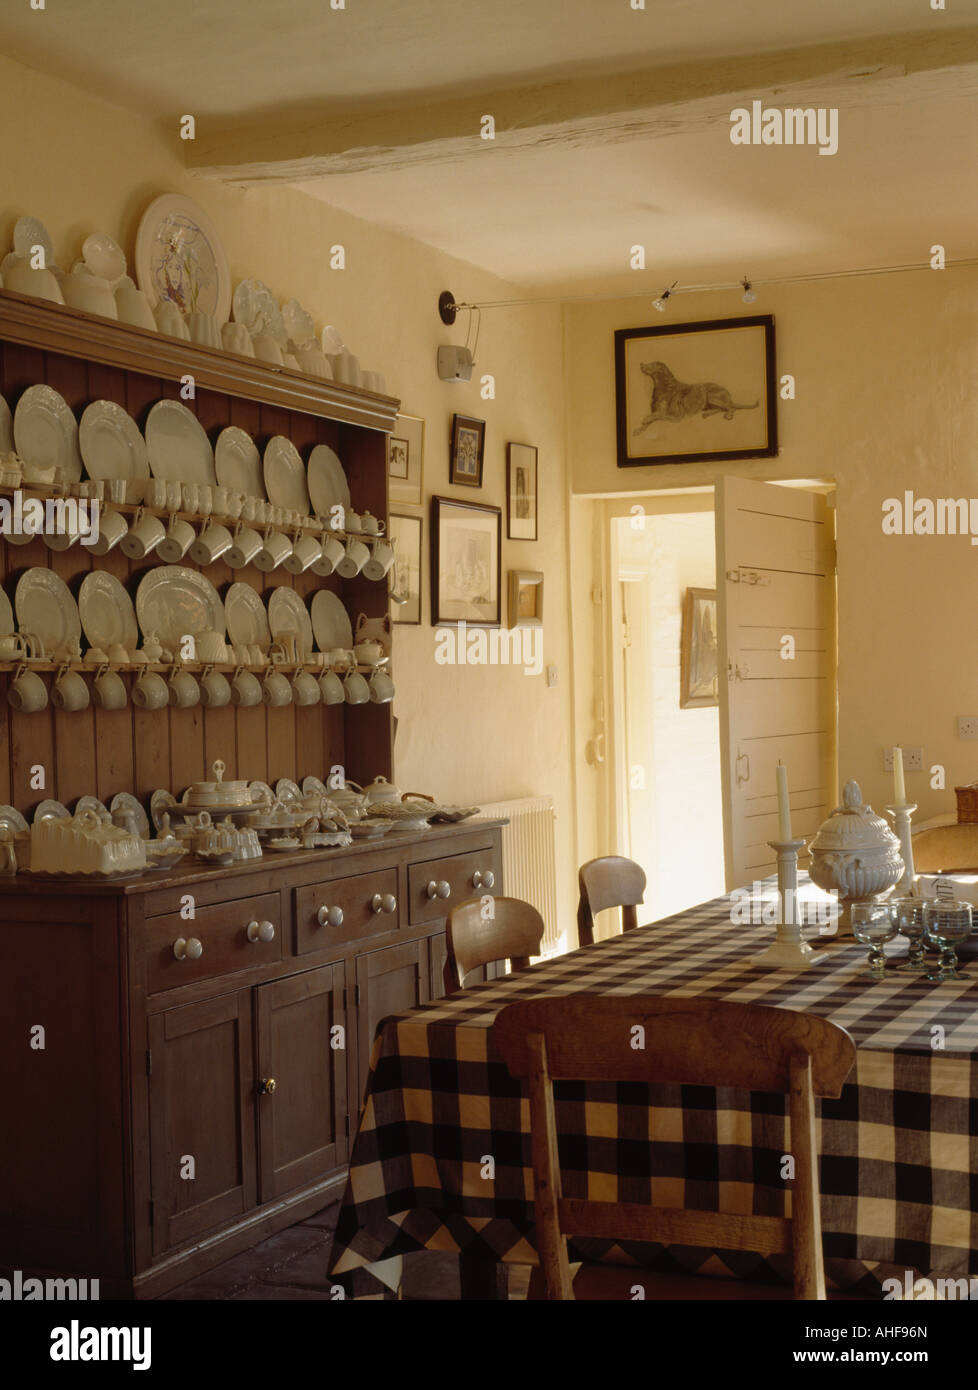 White Crockery On Antique Pine Dresser In Country Dining Room With Blue Checked Cloth Table